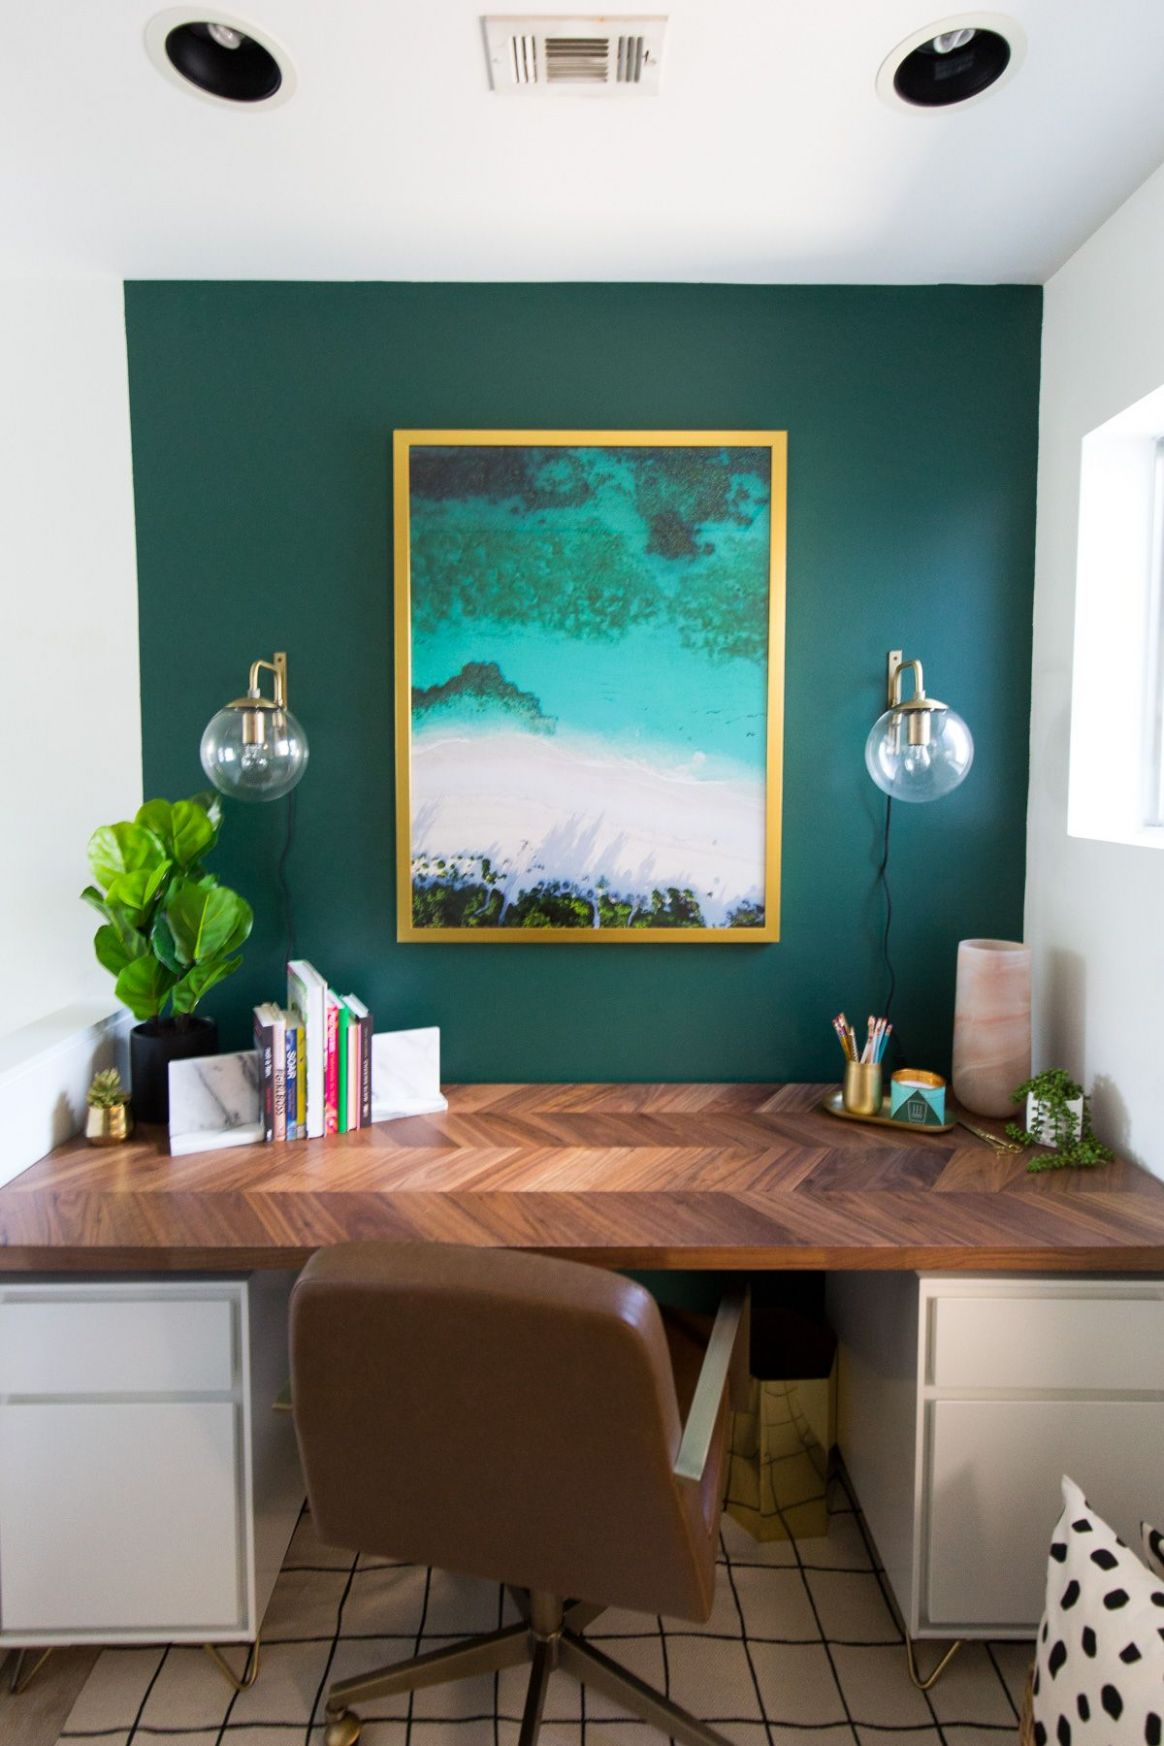 SUGARANDCLOTHCASA: Before + After of our Study Room Makeover (+ ...